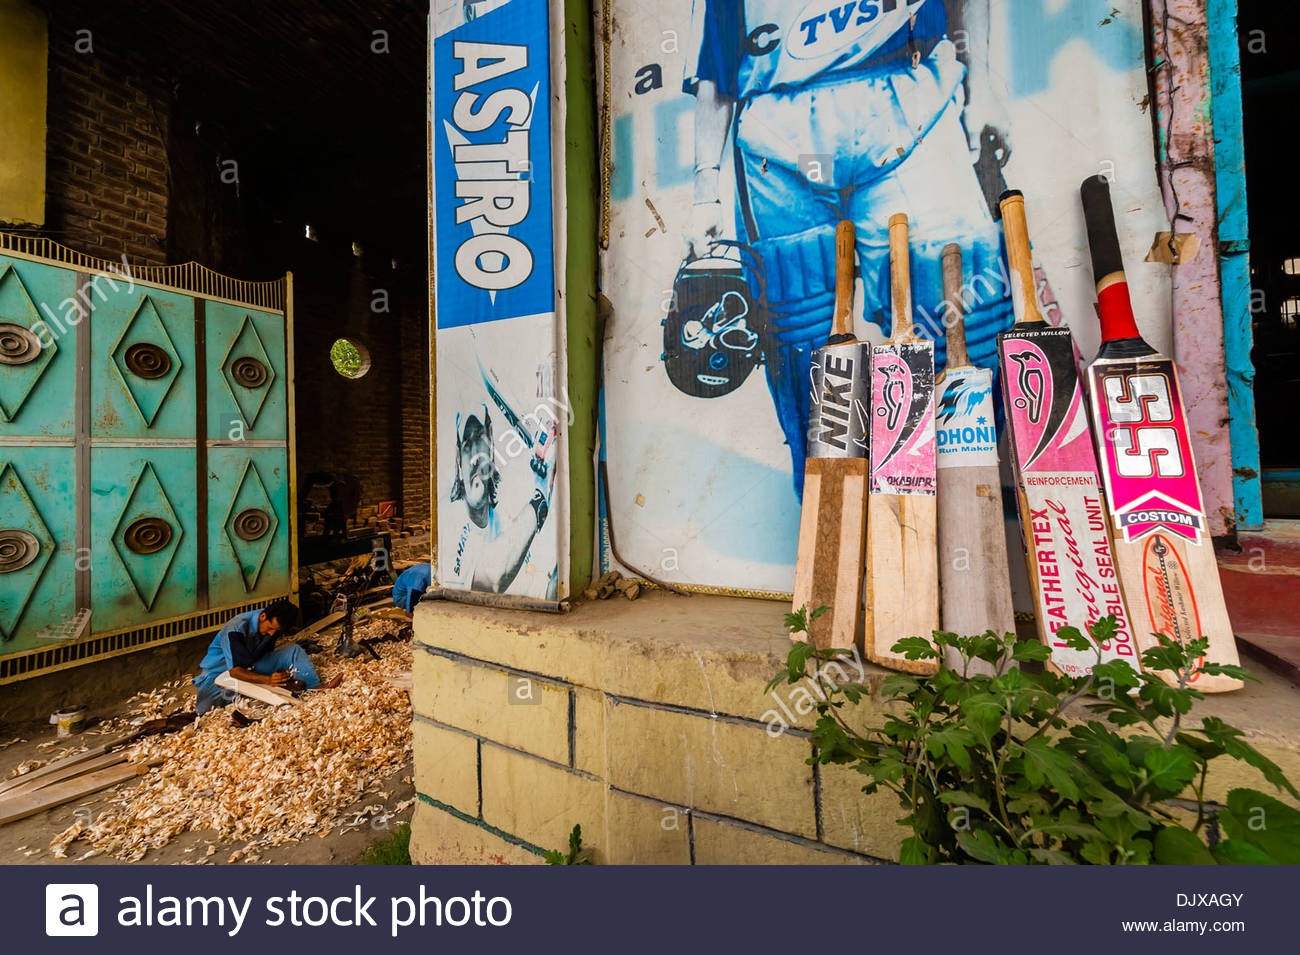 Carving cricket bats by hand at Astro Bat Factory, Kashmir, Jammu and Kashmir State; India. - Stock Image